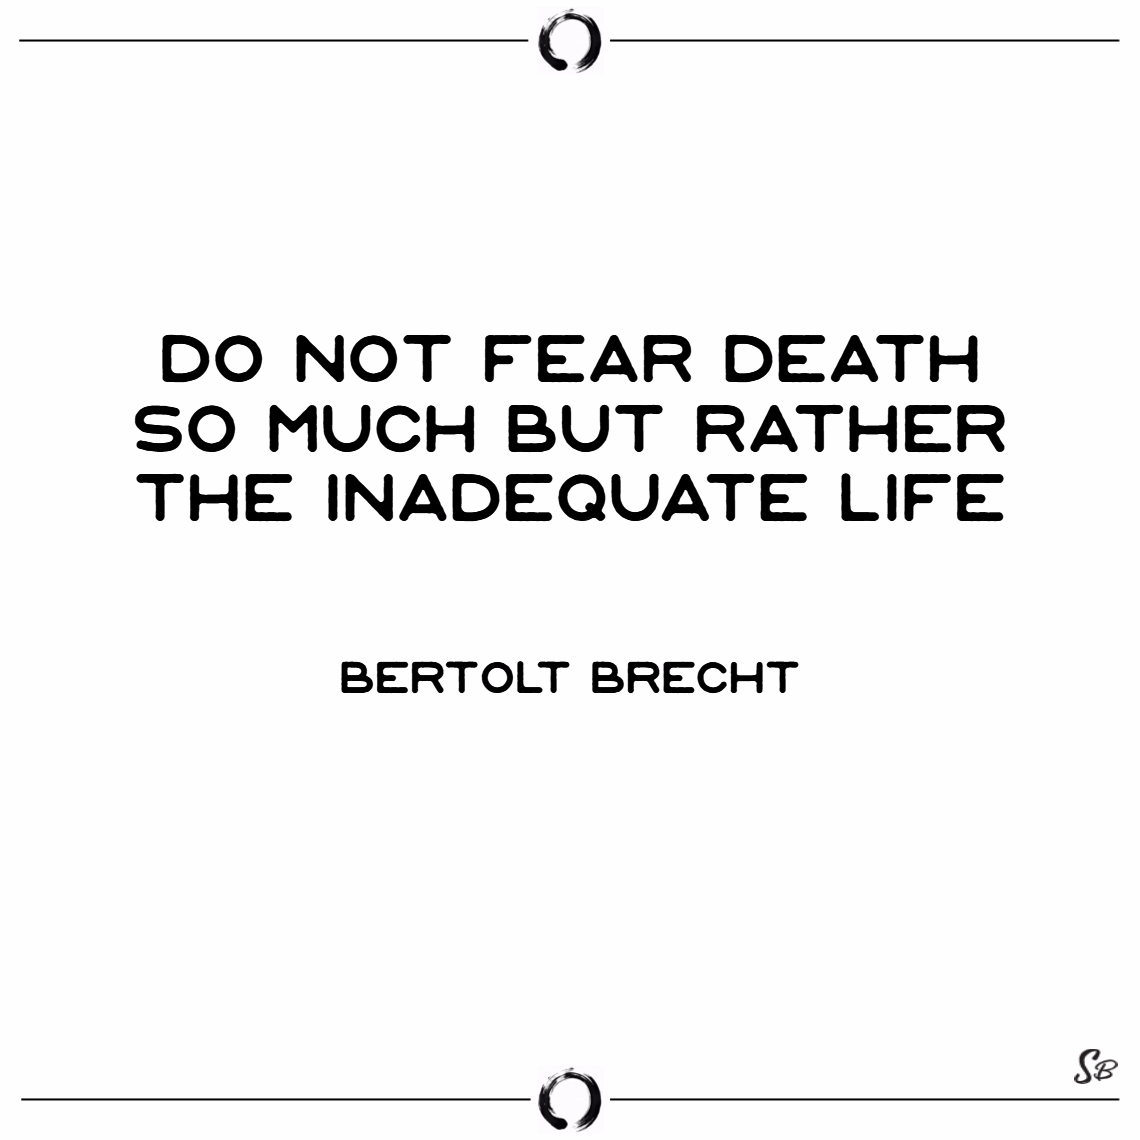 Do not fear death so much but rather the inadequate life. – bertolt brecht